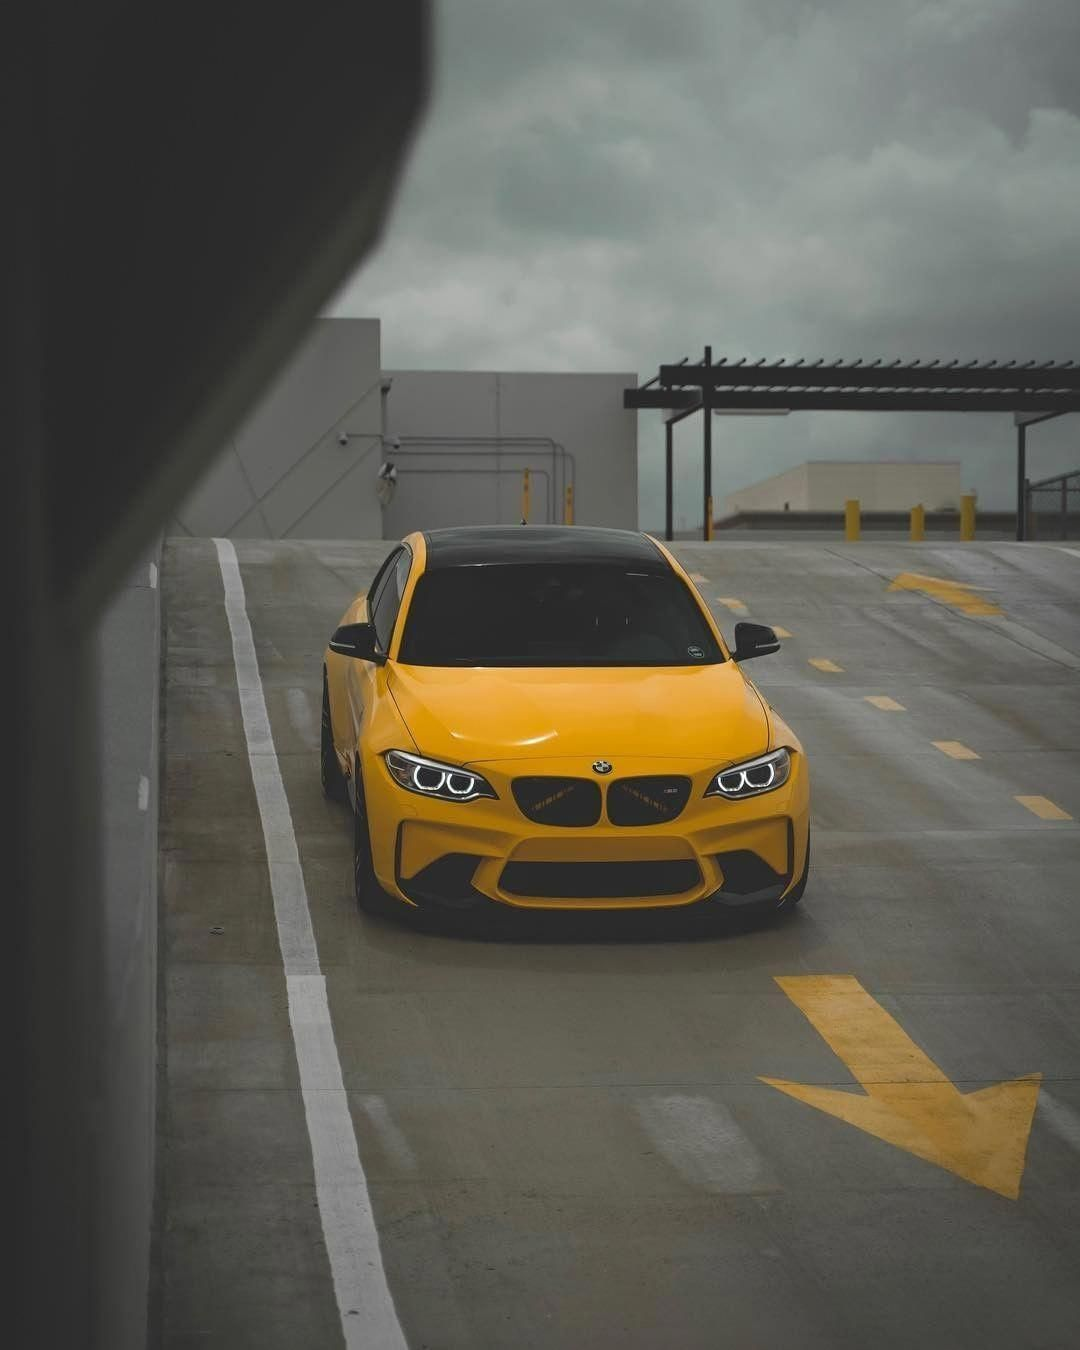 Sports Cars That Start With M Luxury And Expensive Cars Dream Cars Bmw Luxury Cars Bmw Bmw